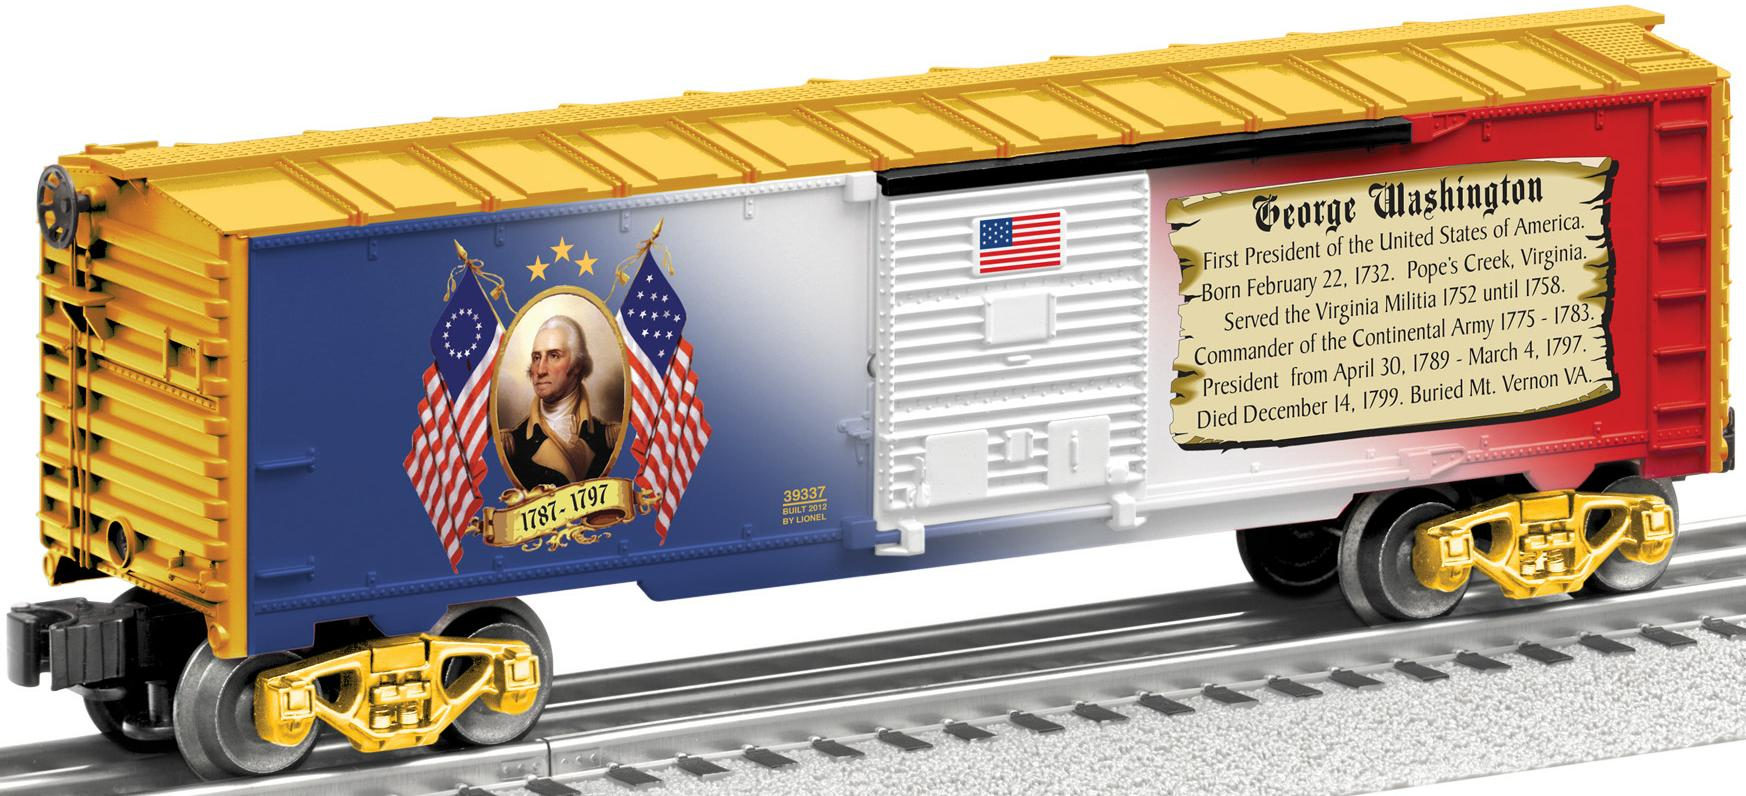 Abraham Lincoln Boxcar image